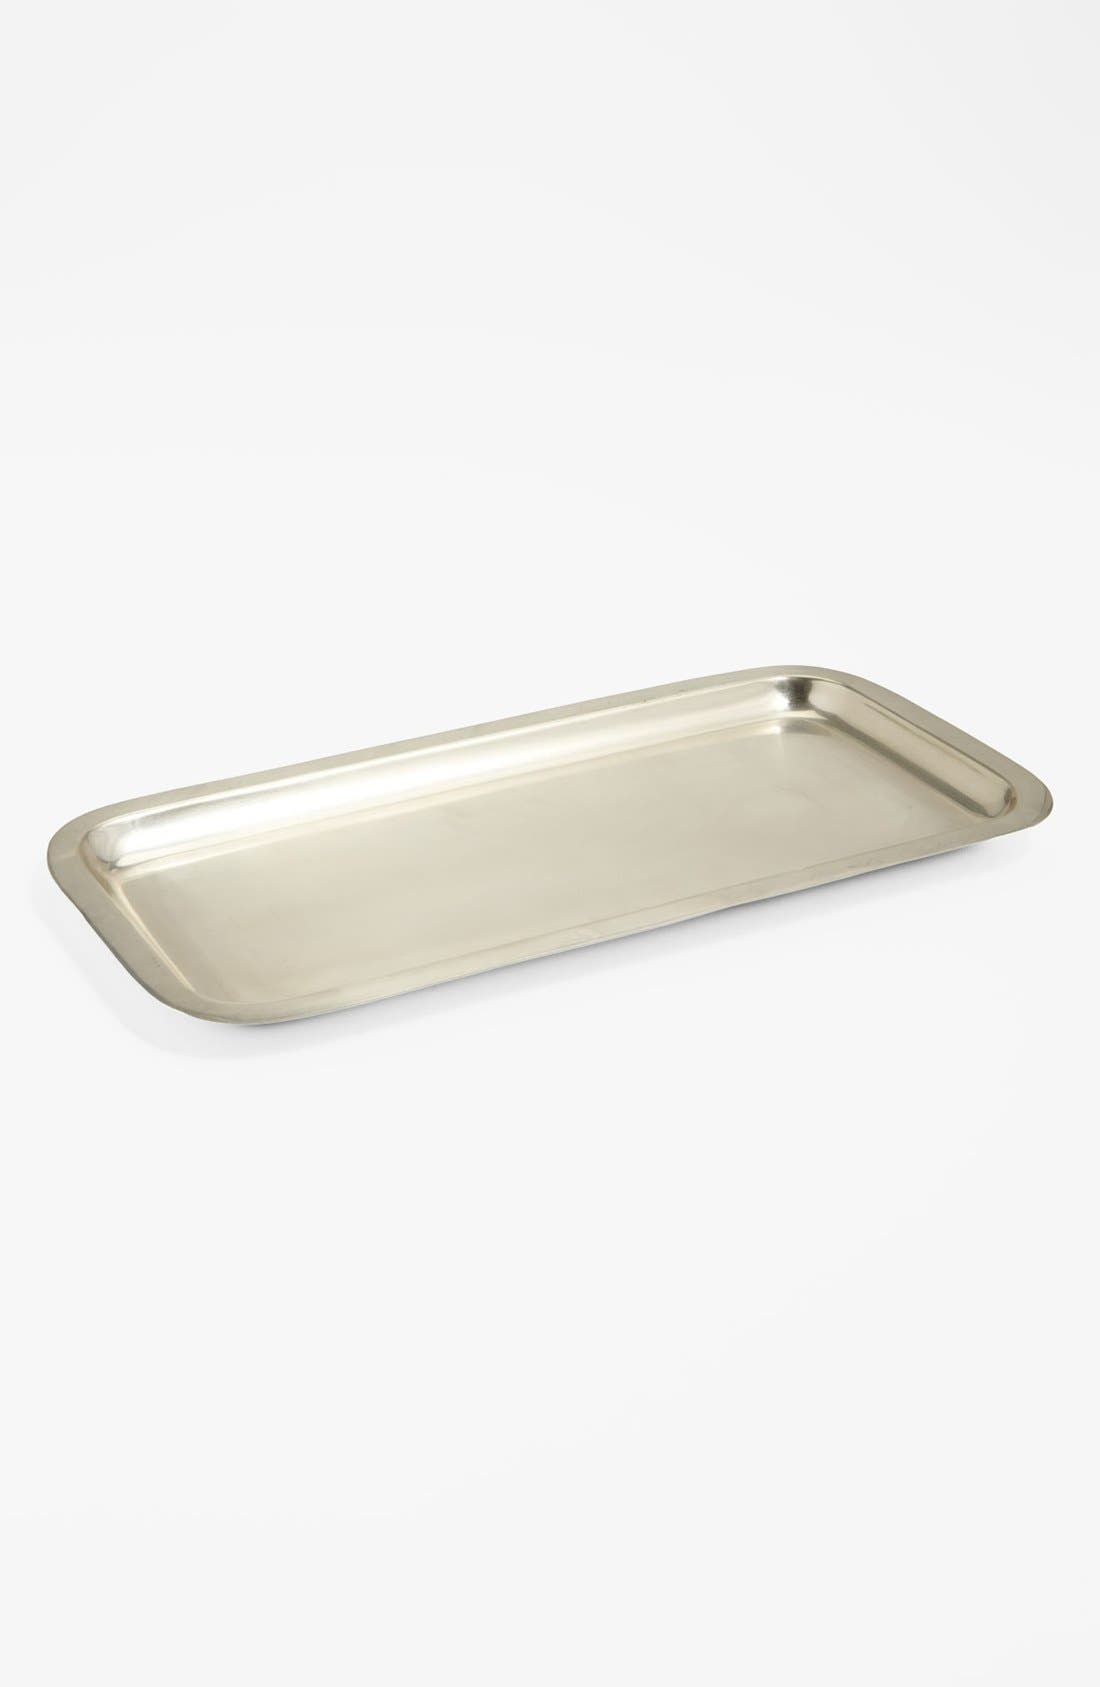 Studio 'Wallingford' Tray,                         Main,                         color, NICKEL